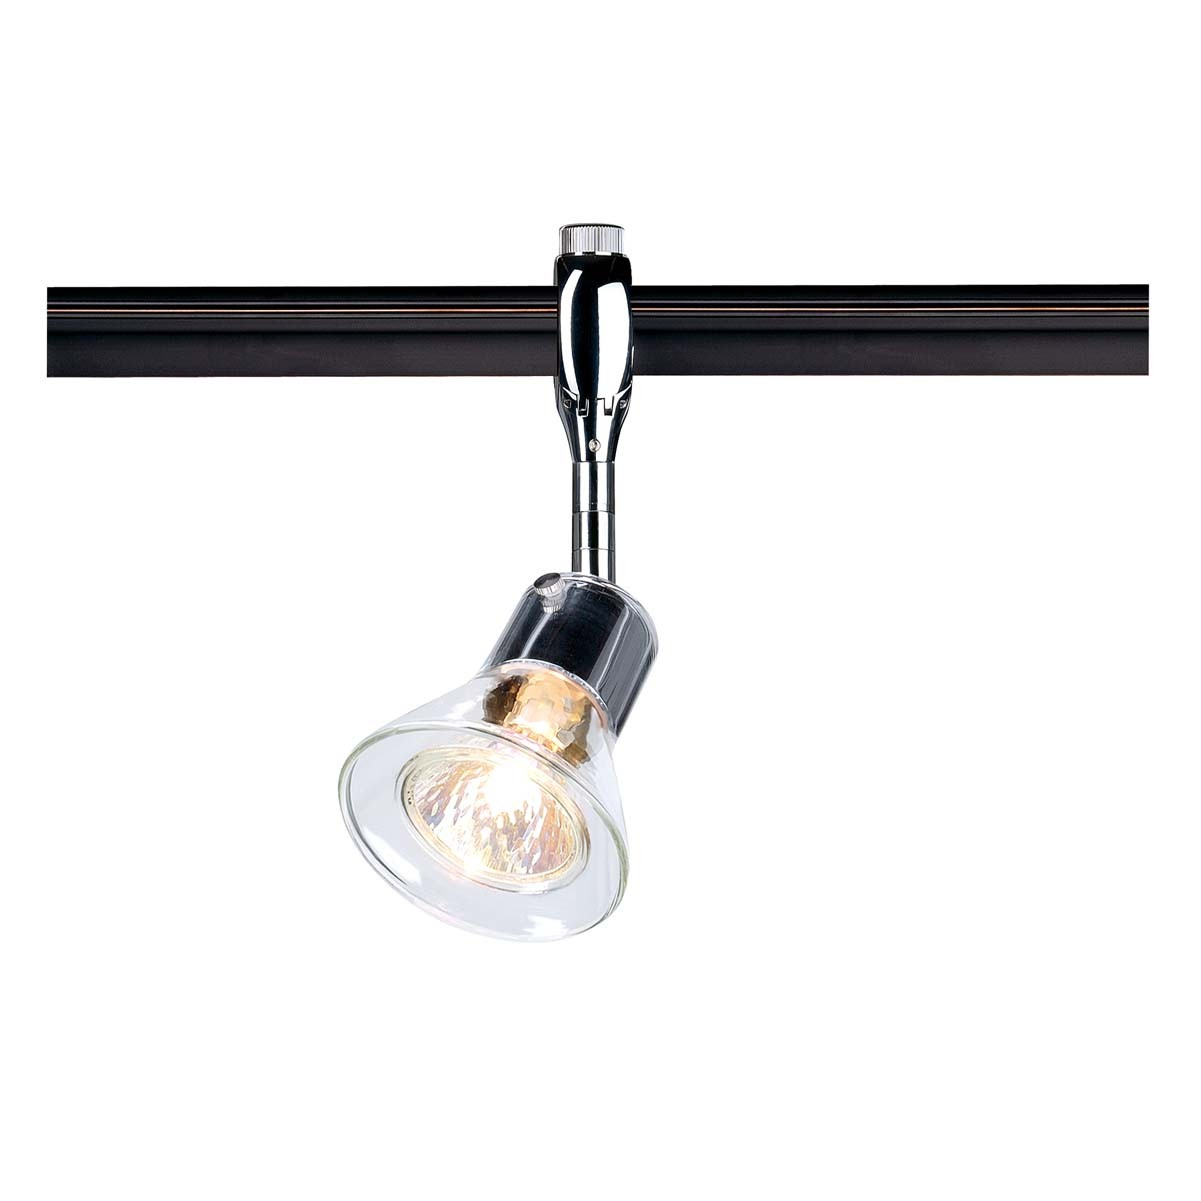 SLV 185632 Anila 50W Chrome & Black Easytec II 240V Track Light